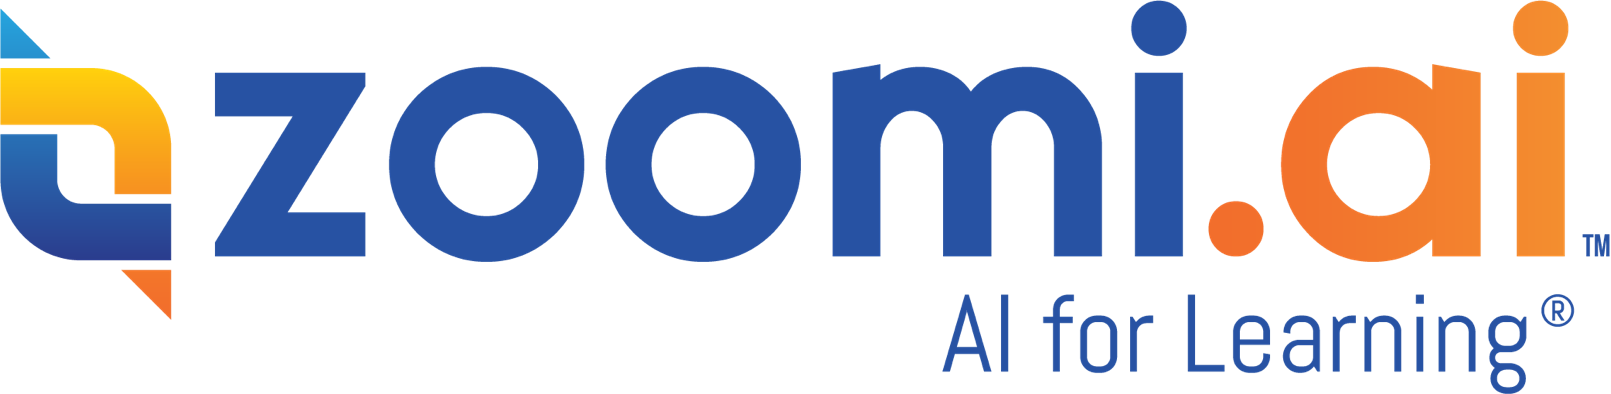 zoomi.ai logo colour